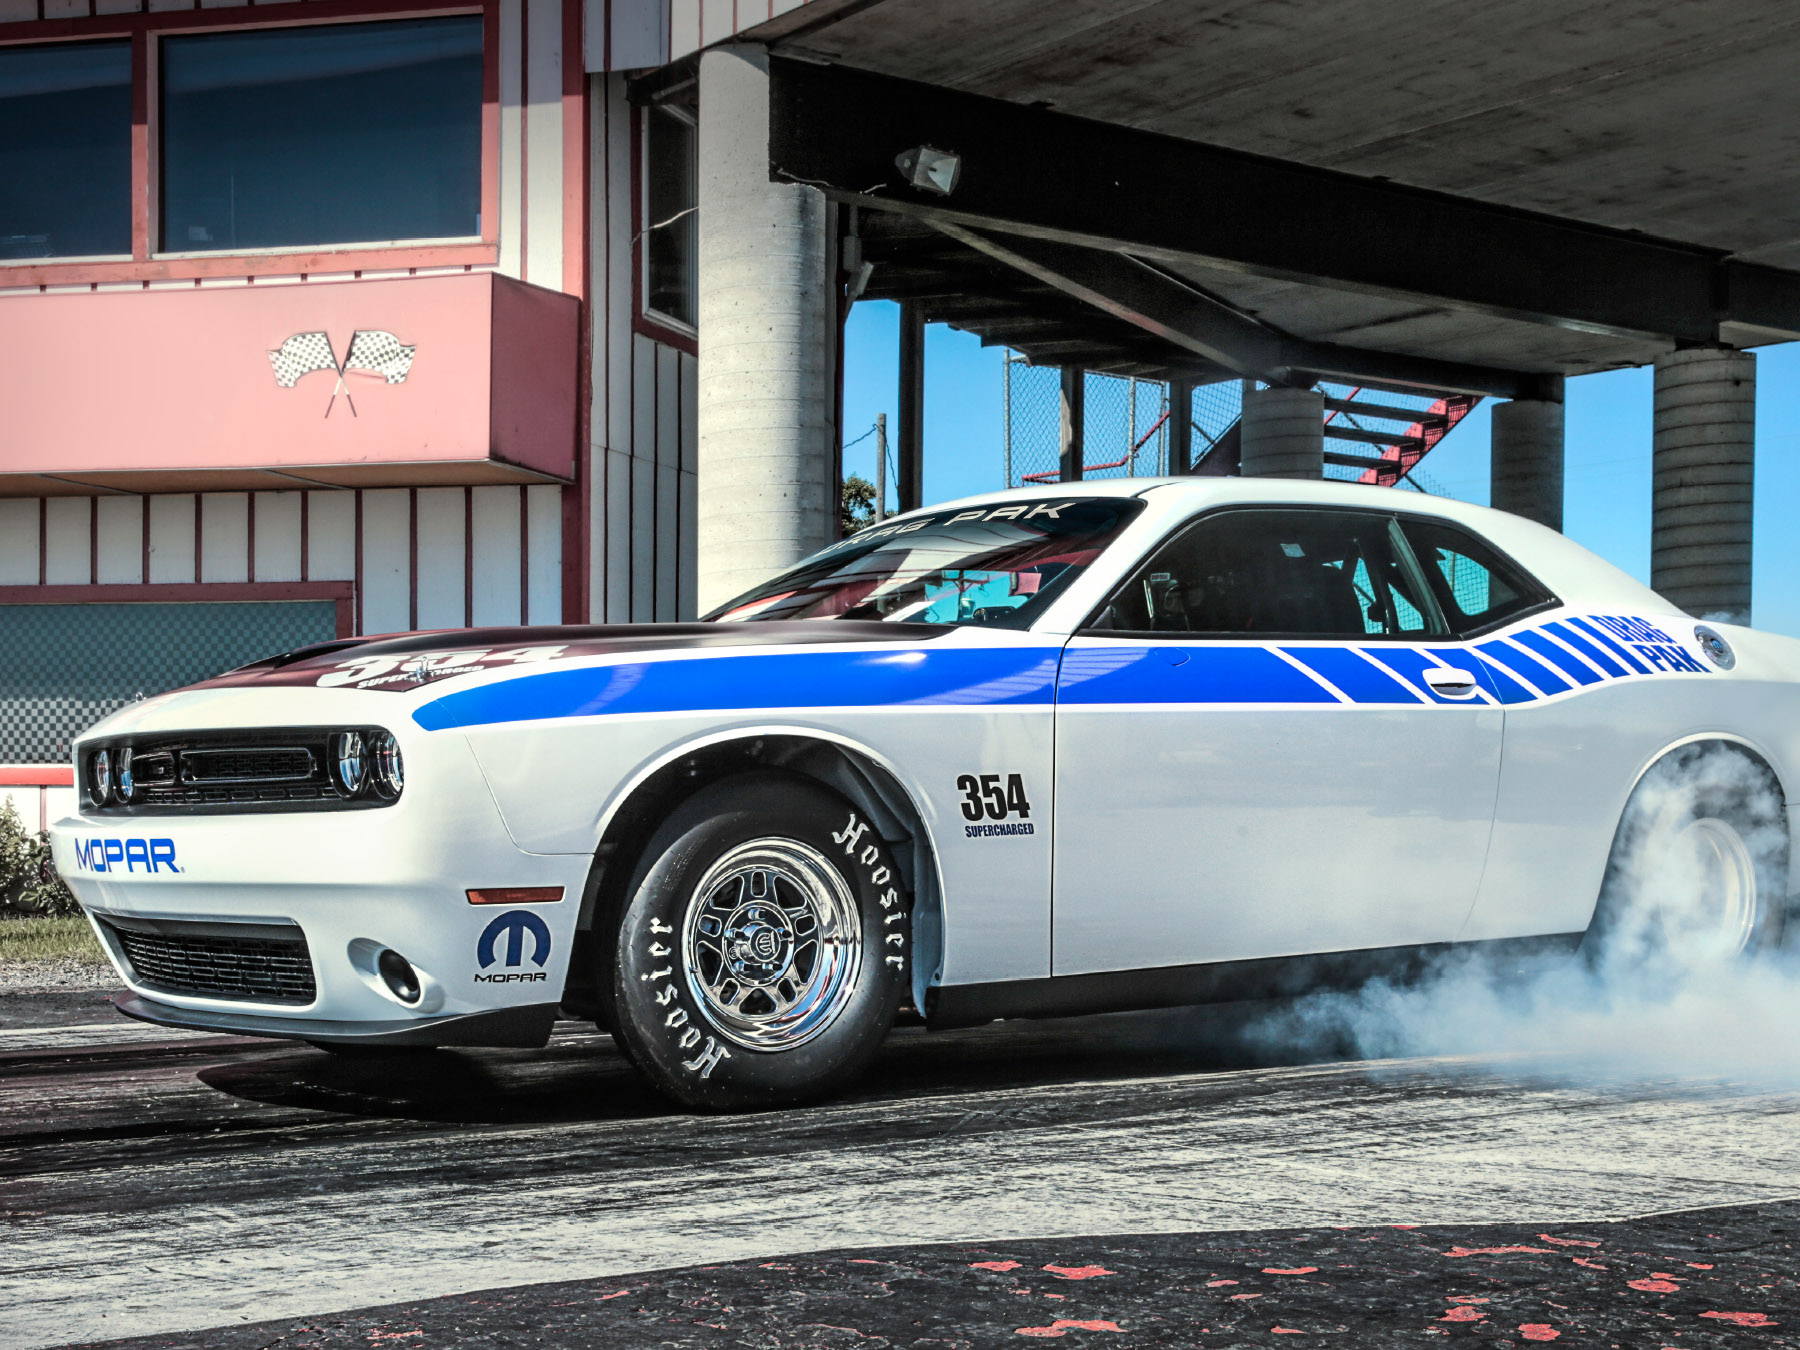 White and Blue mopar Dodge Challenger doing a burnout